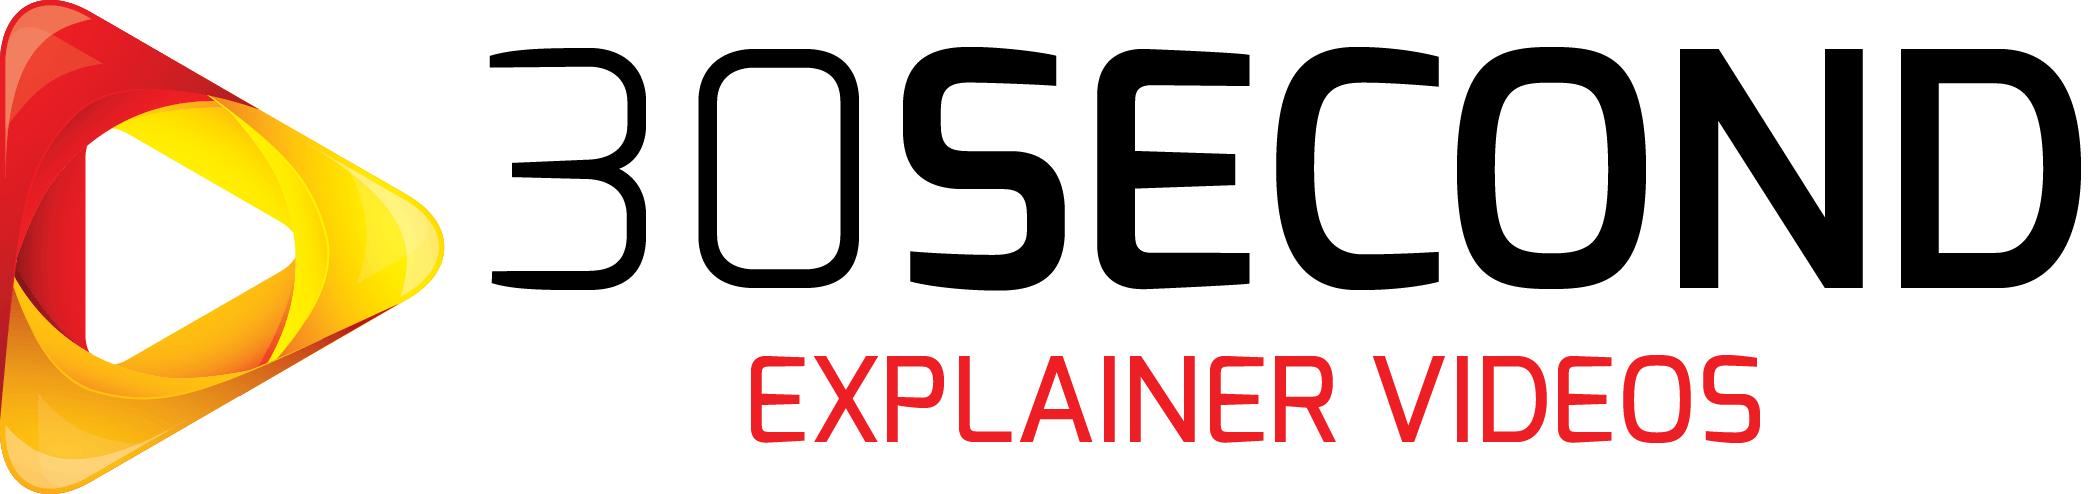 30 Second Explainer Videos logo